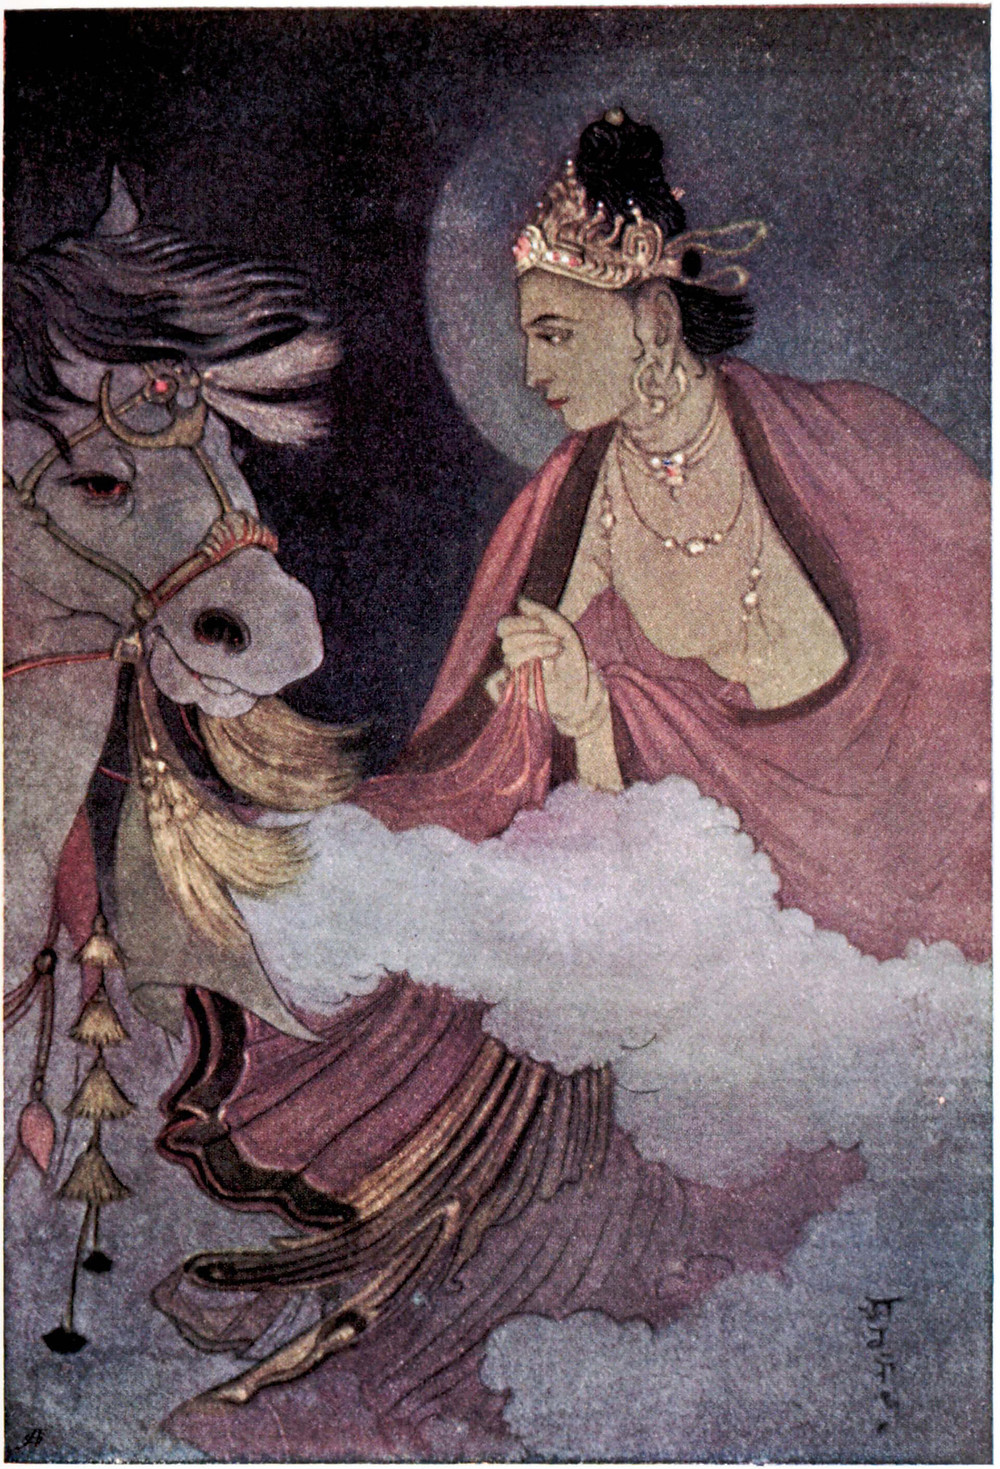 Abanindranath Tagore - Painting, 1914, 'Departure of Prince Siddhartha' - Bengal School of Art